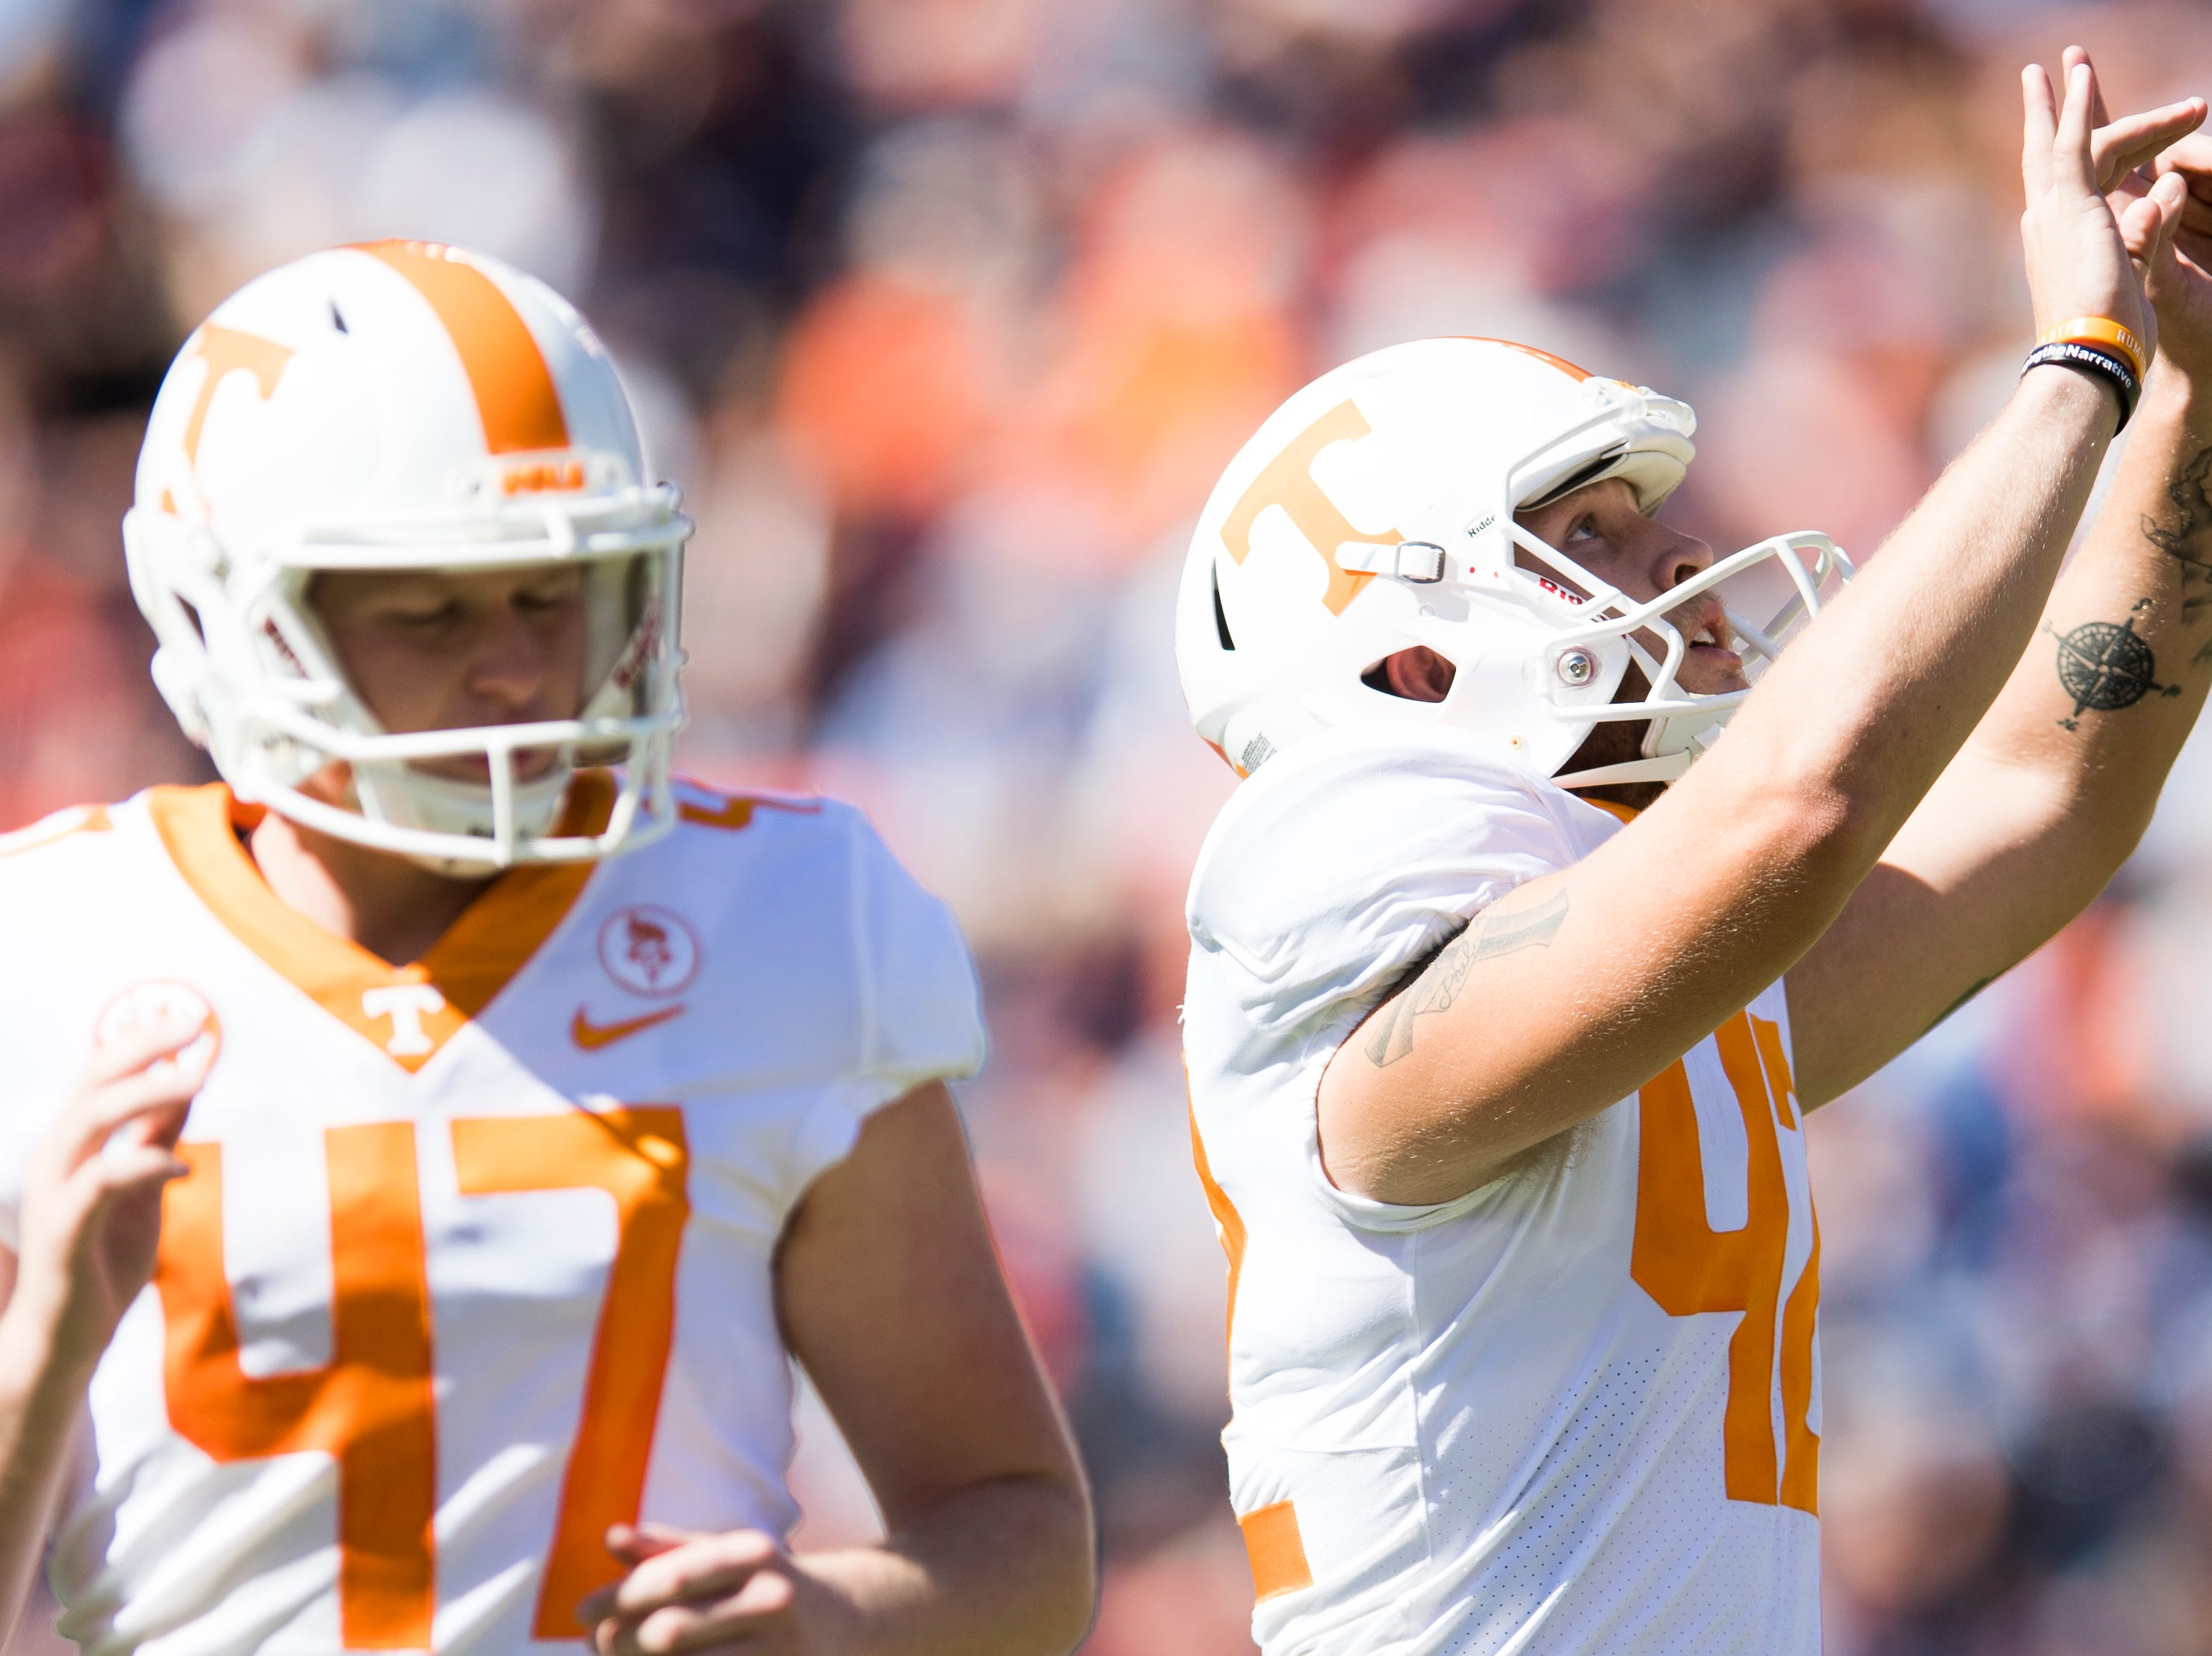 Tennessee placekicker Brent Cimaglia (42) celebrates after making a field goal during a game between Tennessee and Auburn at Jordan-Hare Stadium in Auburn, Alabama on Saturday, October 13, 2018.